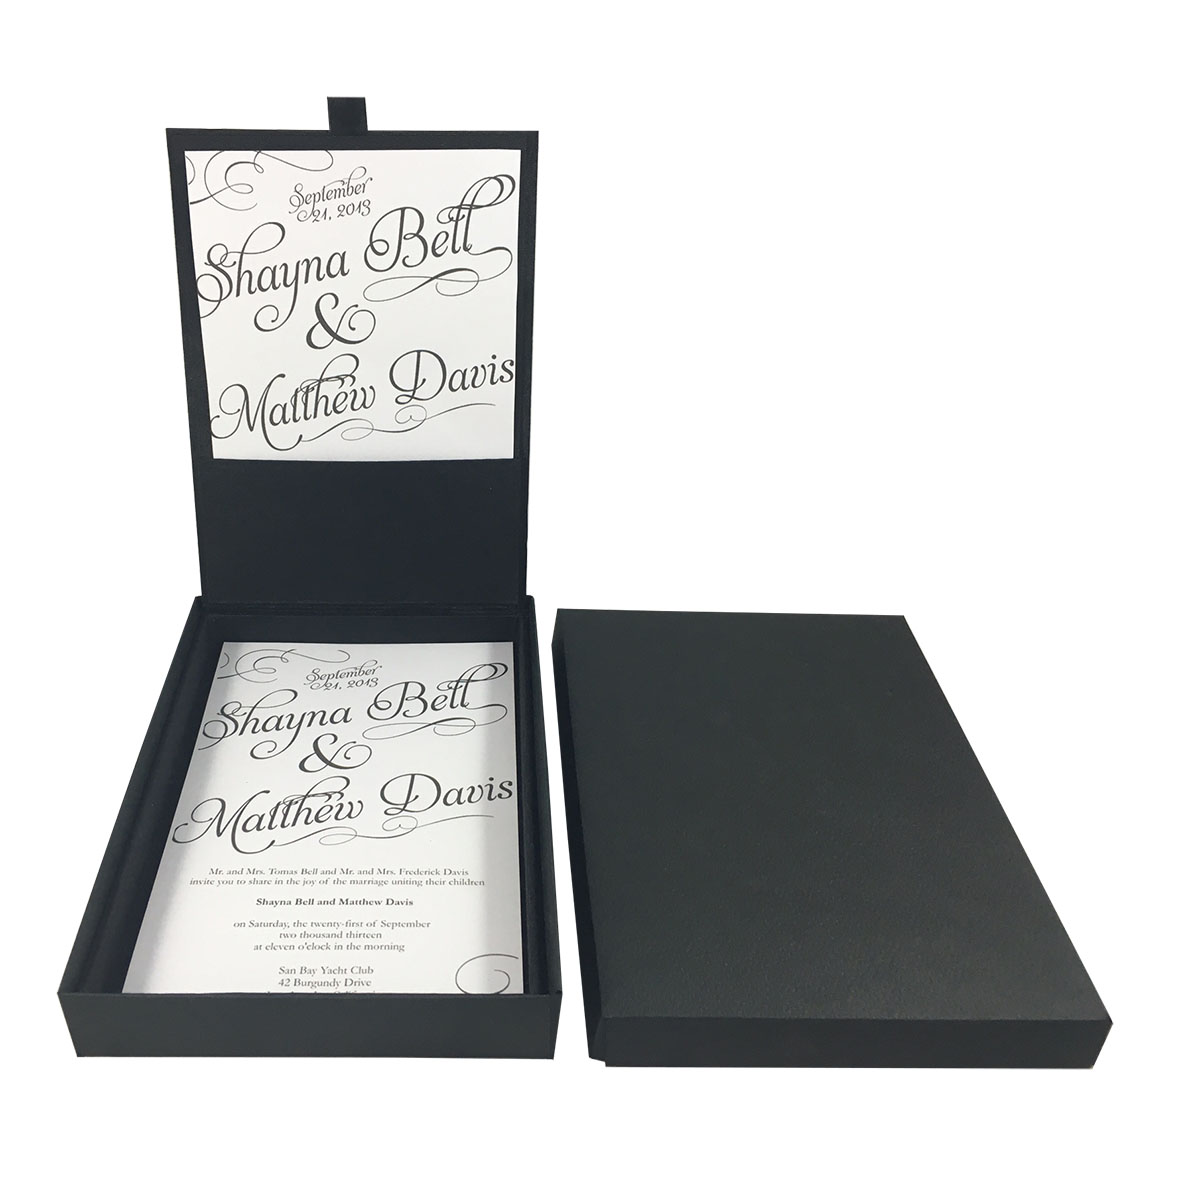 Luxury black embroidered wedding box & matching black mailing box